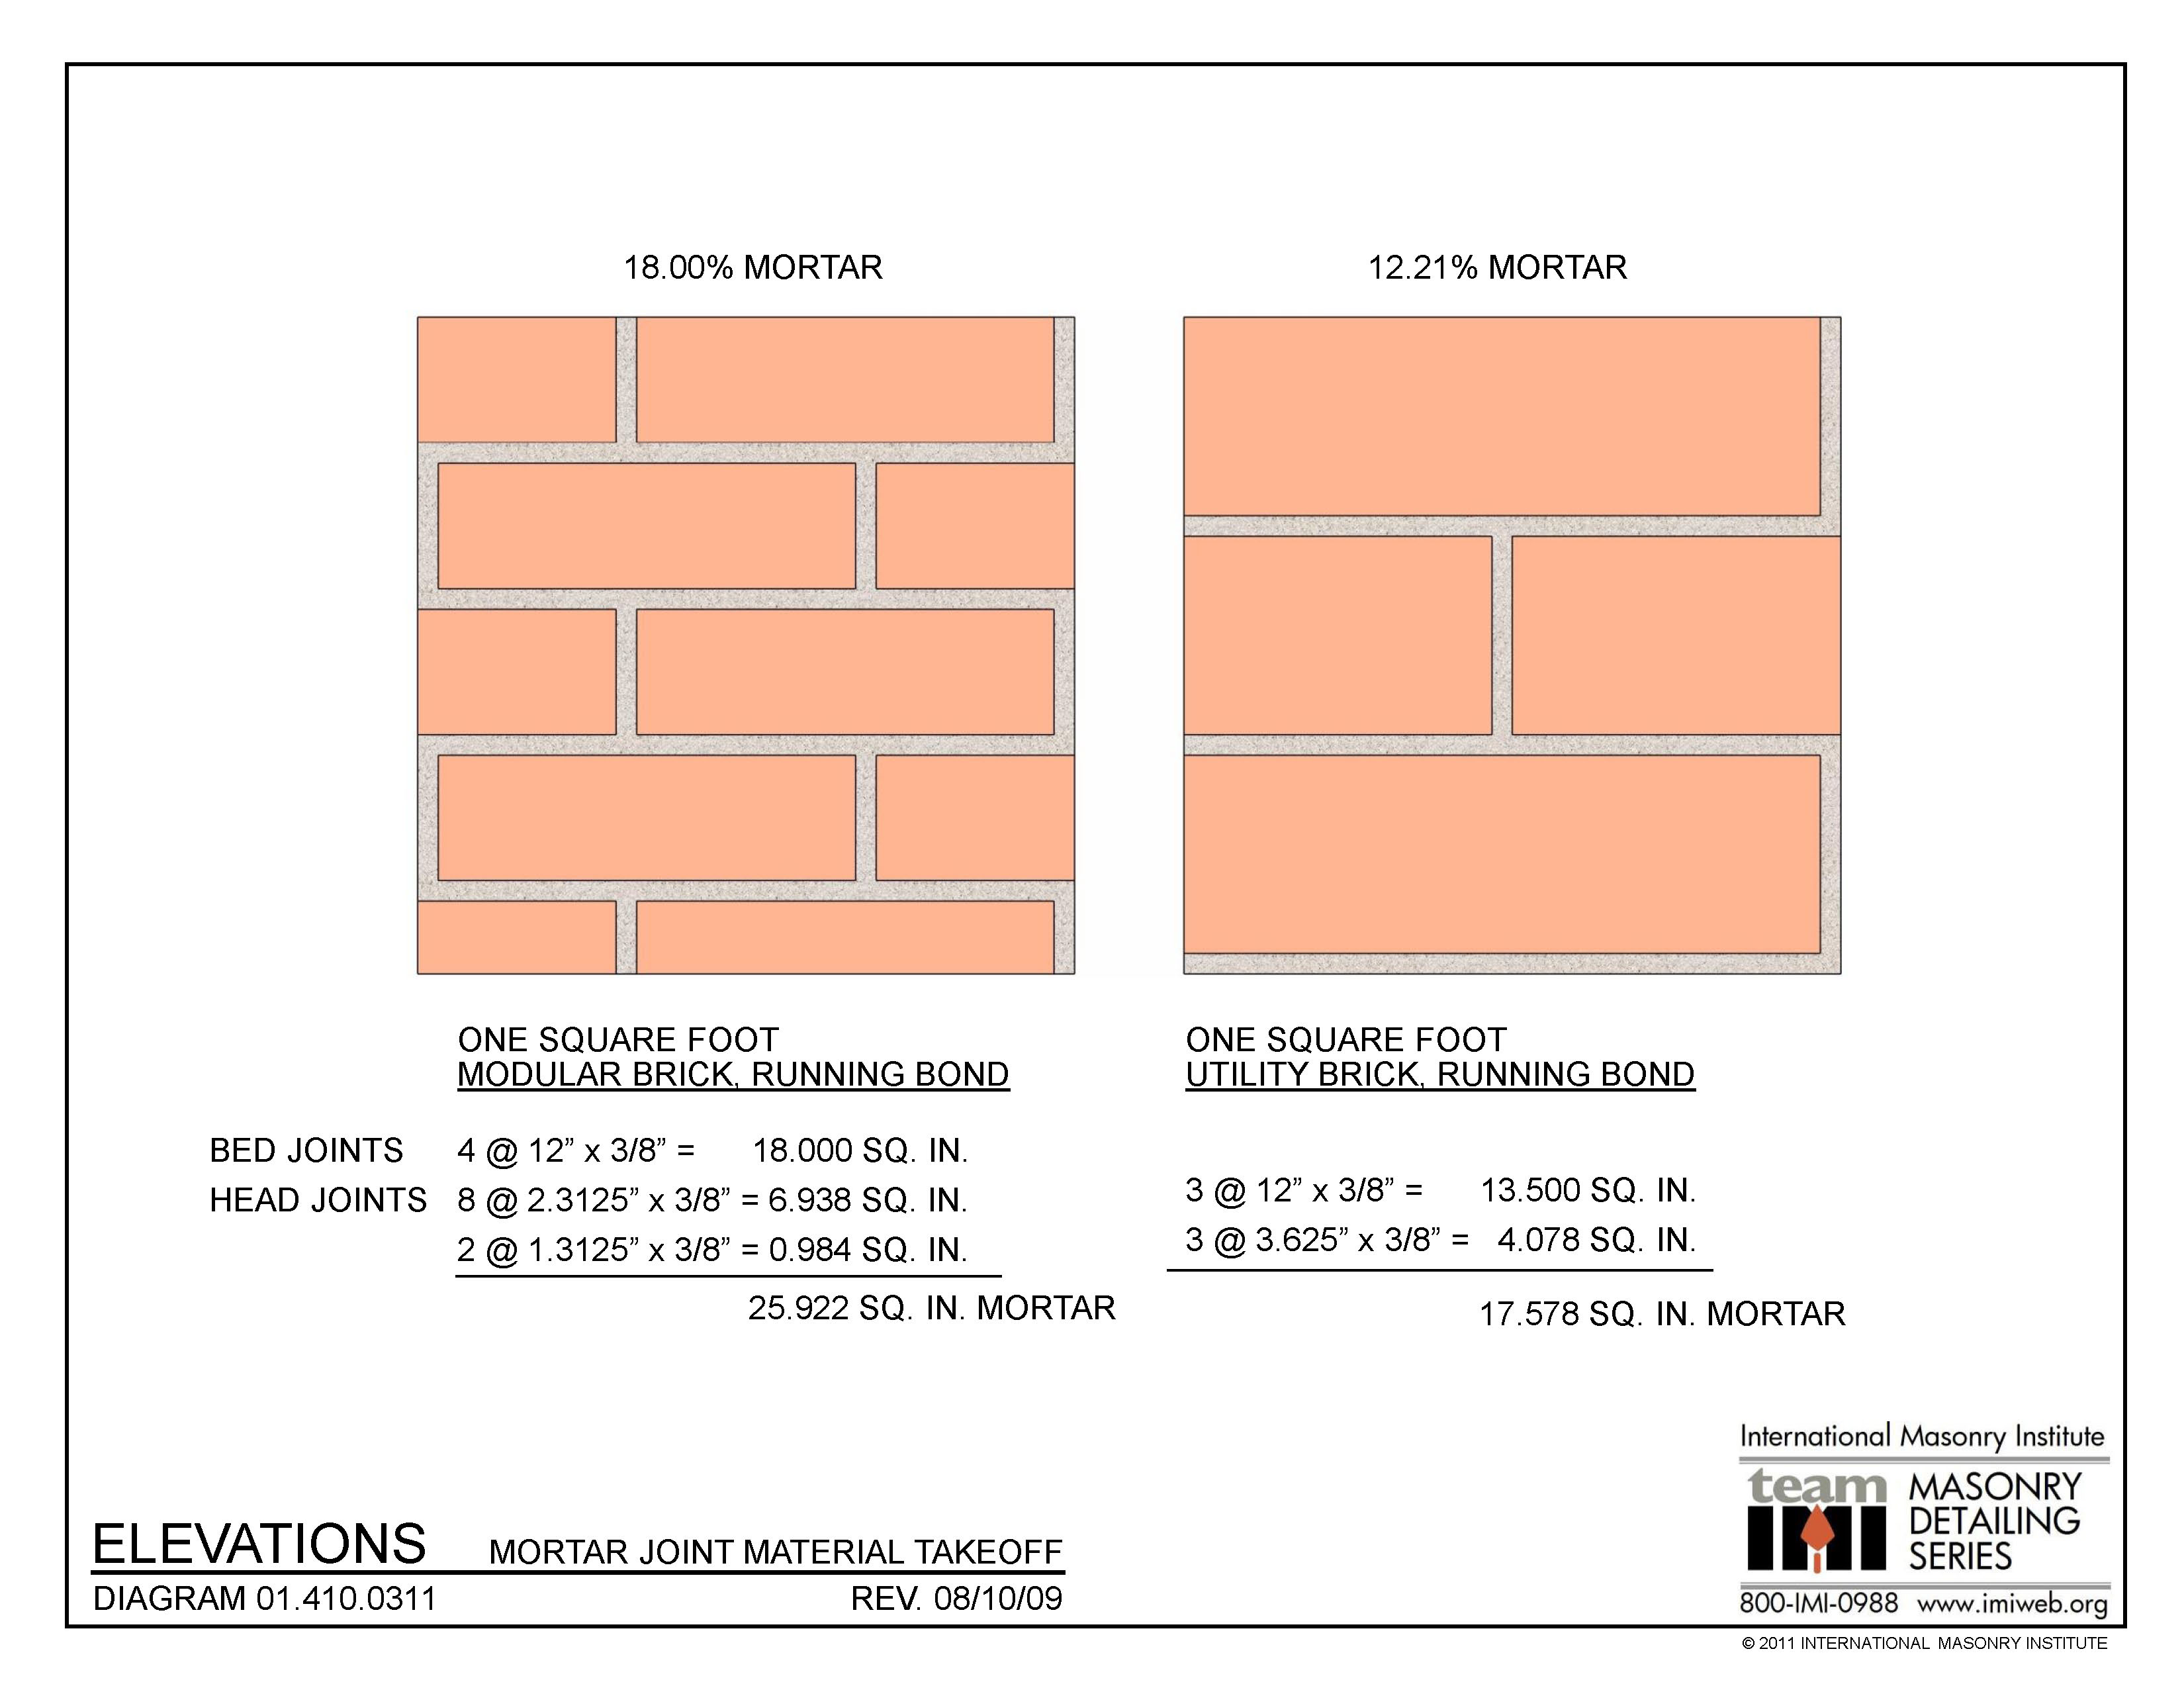 01 410 0311 Elevations Mortar Joint Material Takeoff